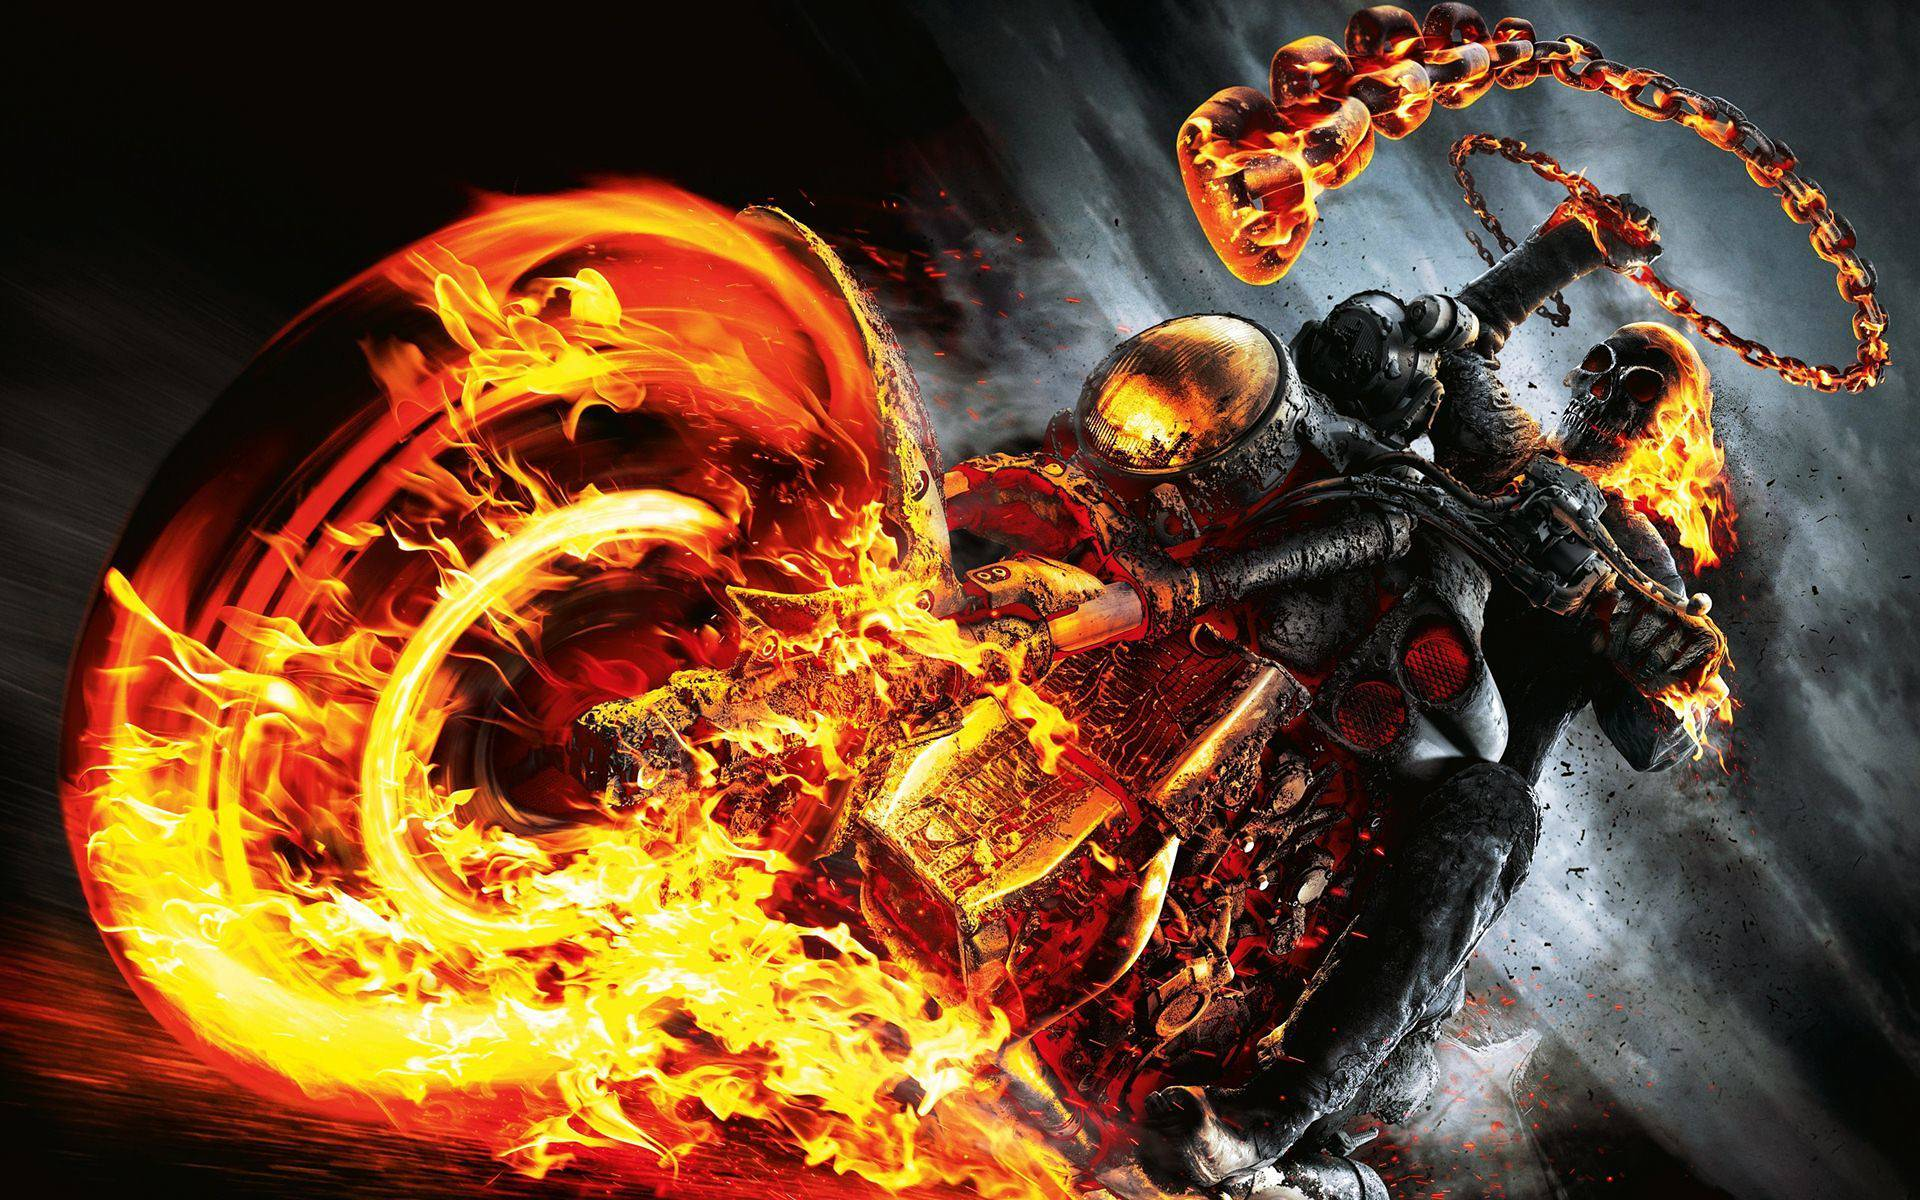 Ghost rider porn pic nsfw movies